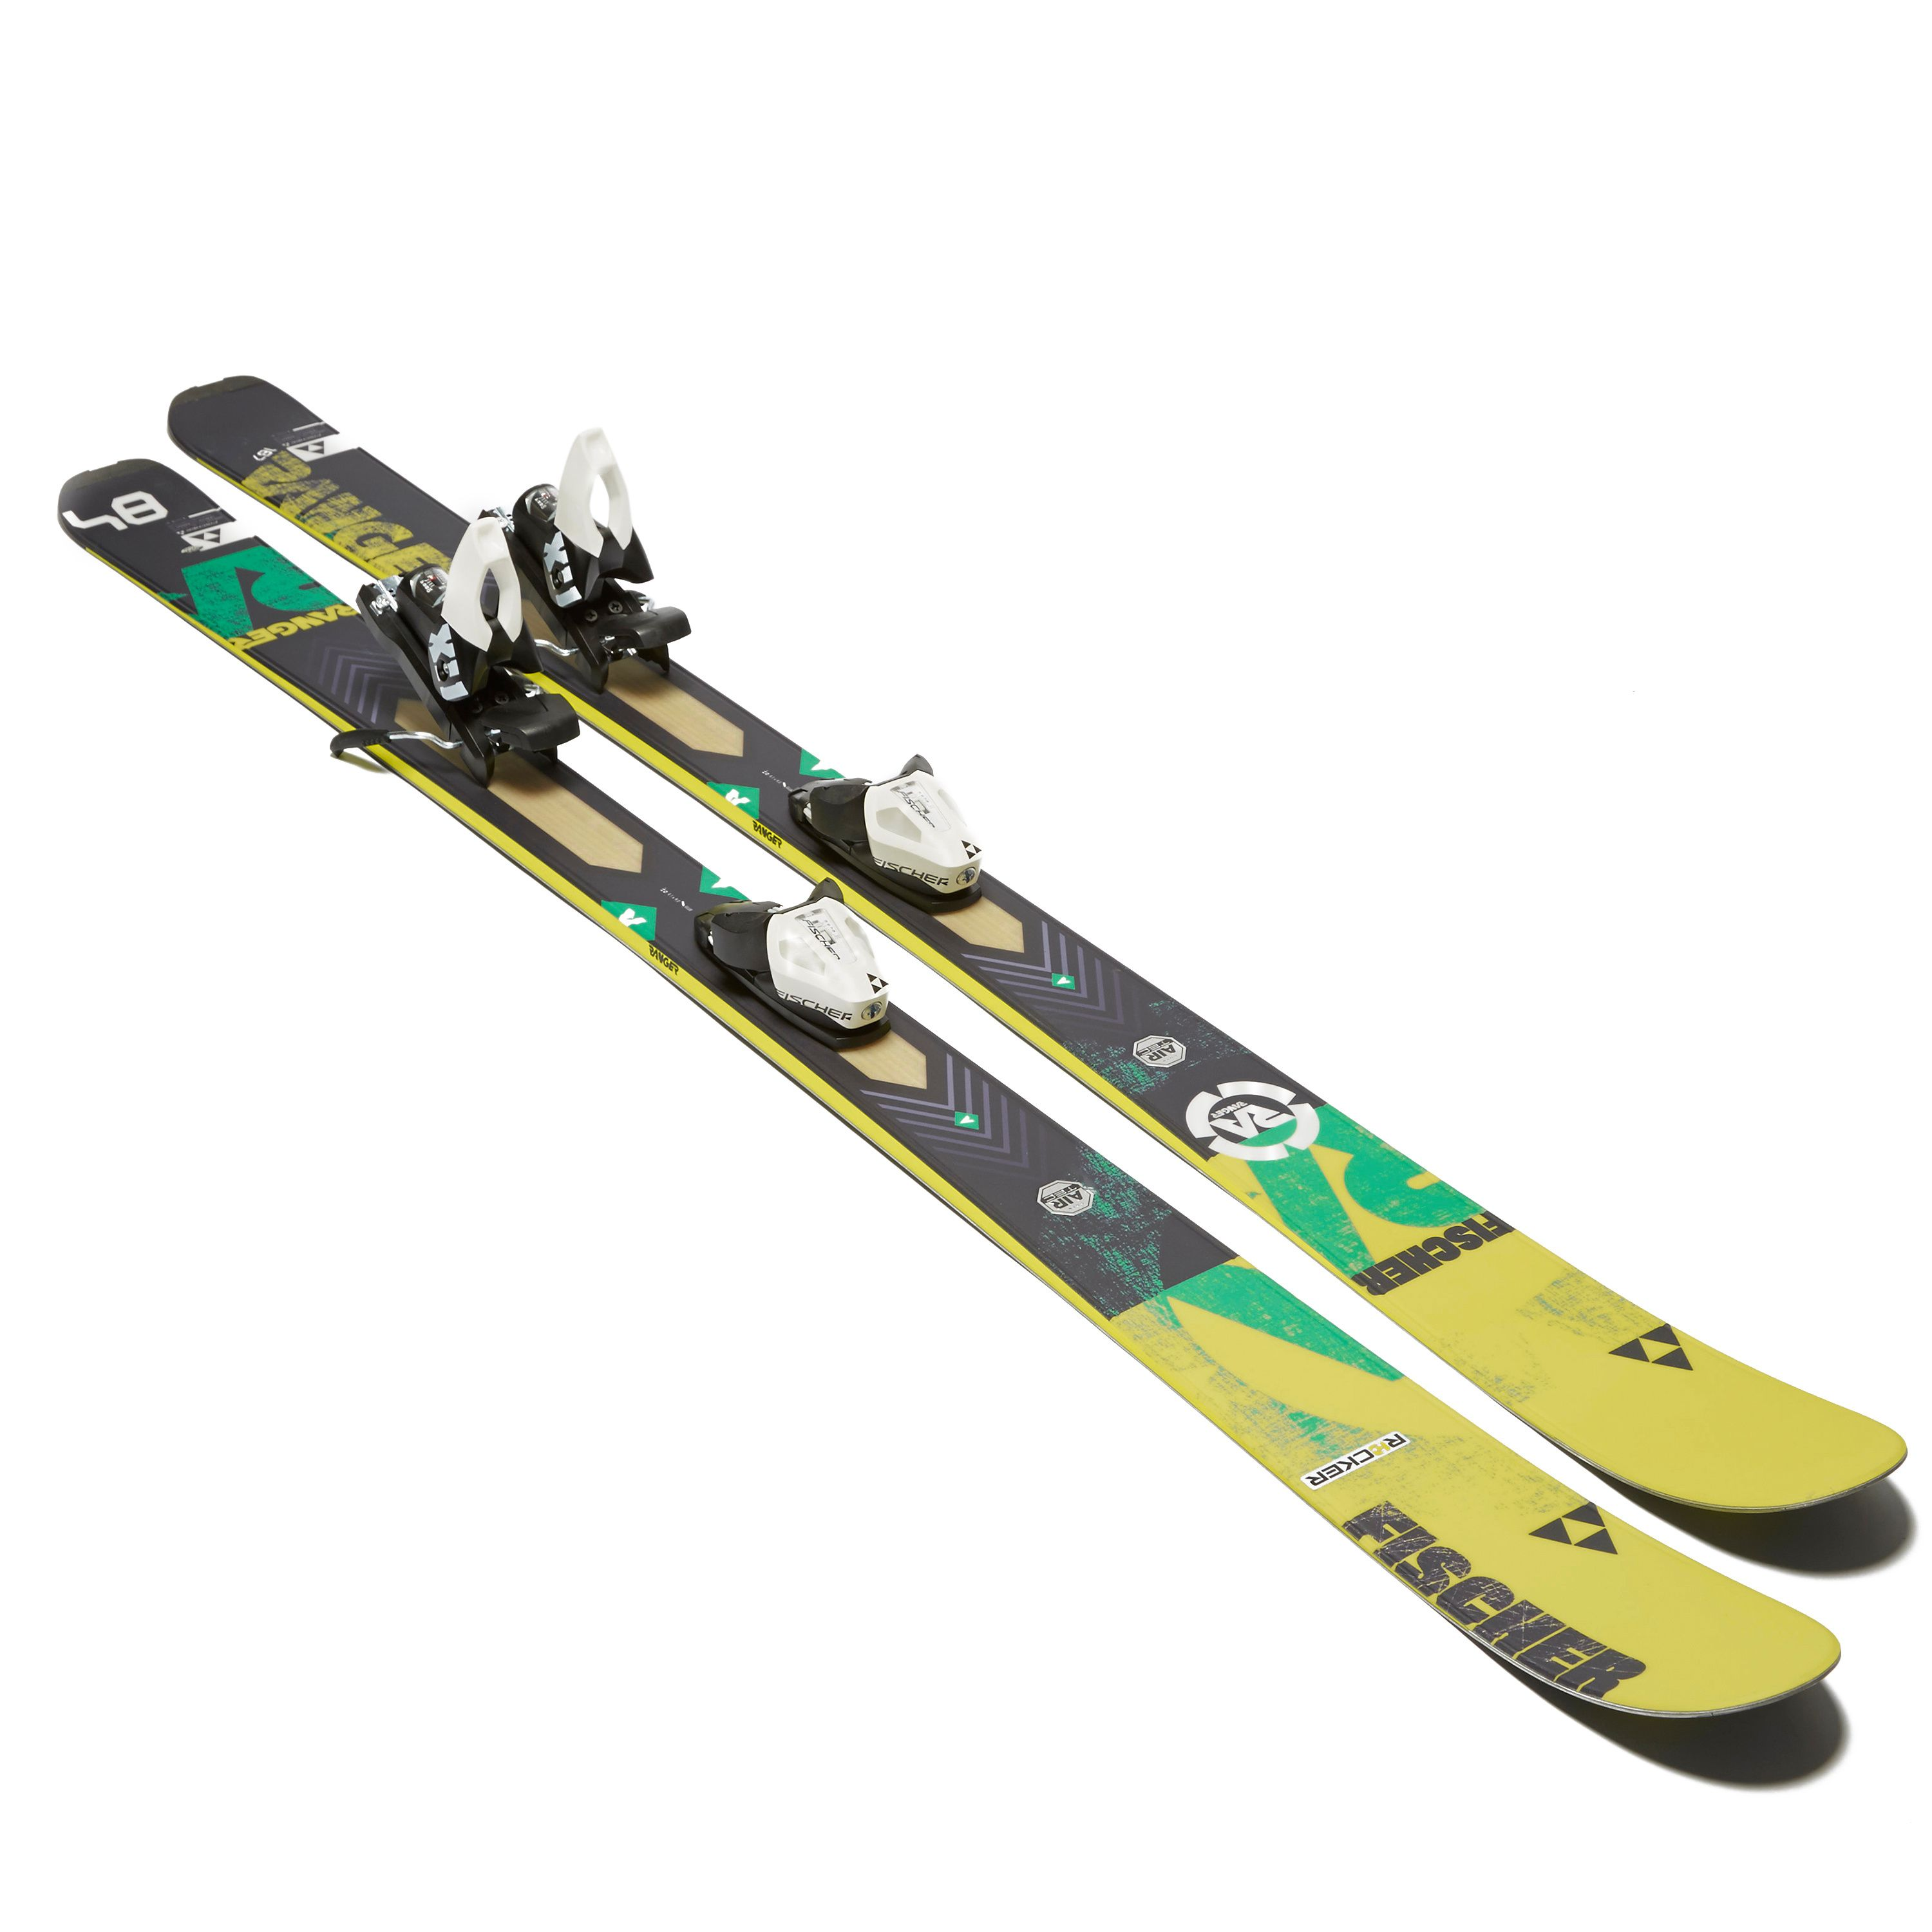 FISCHER SPORTS Ranger 84 Skis with X11 Bindings